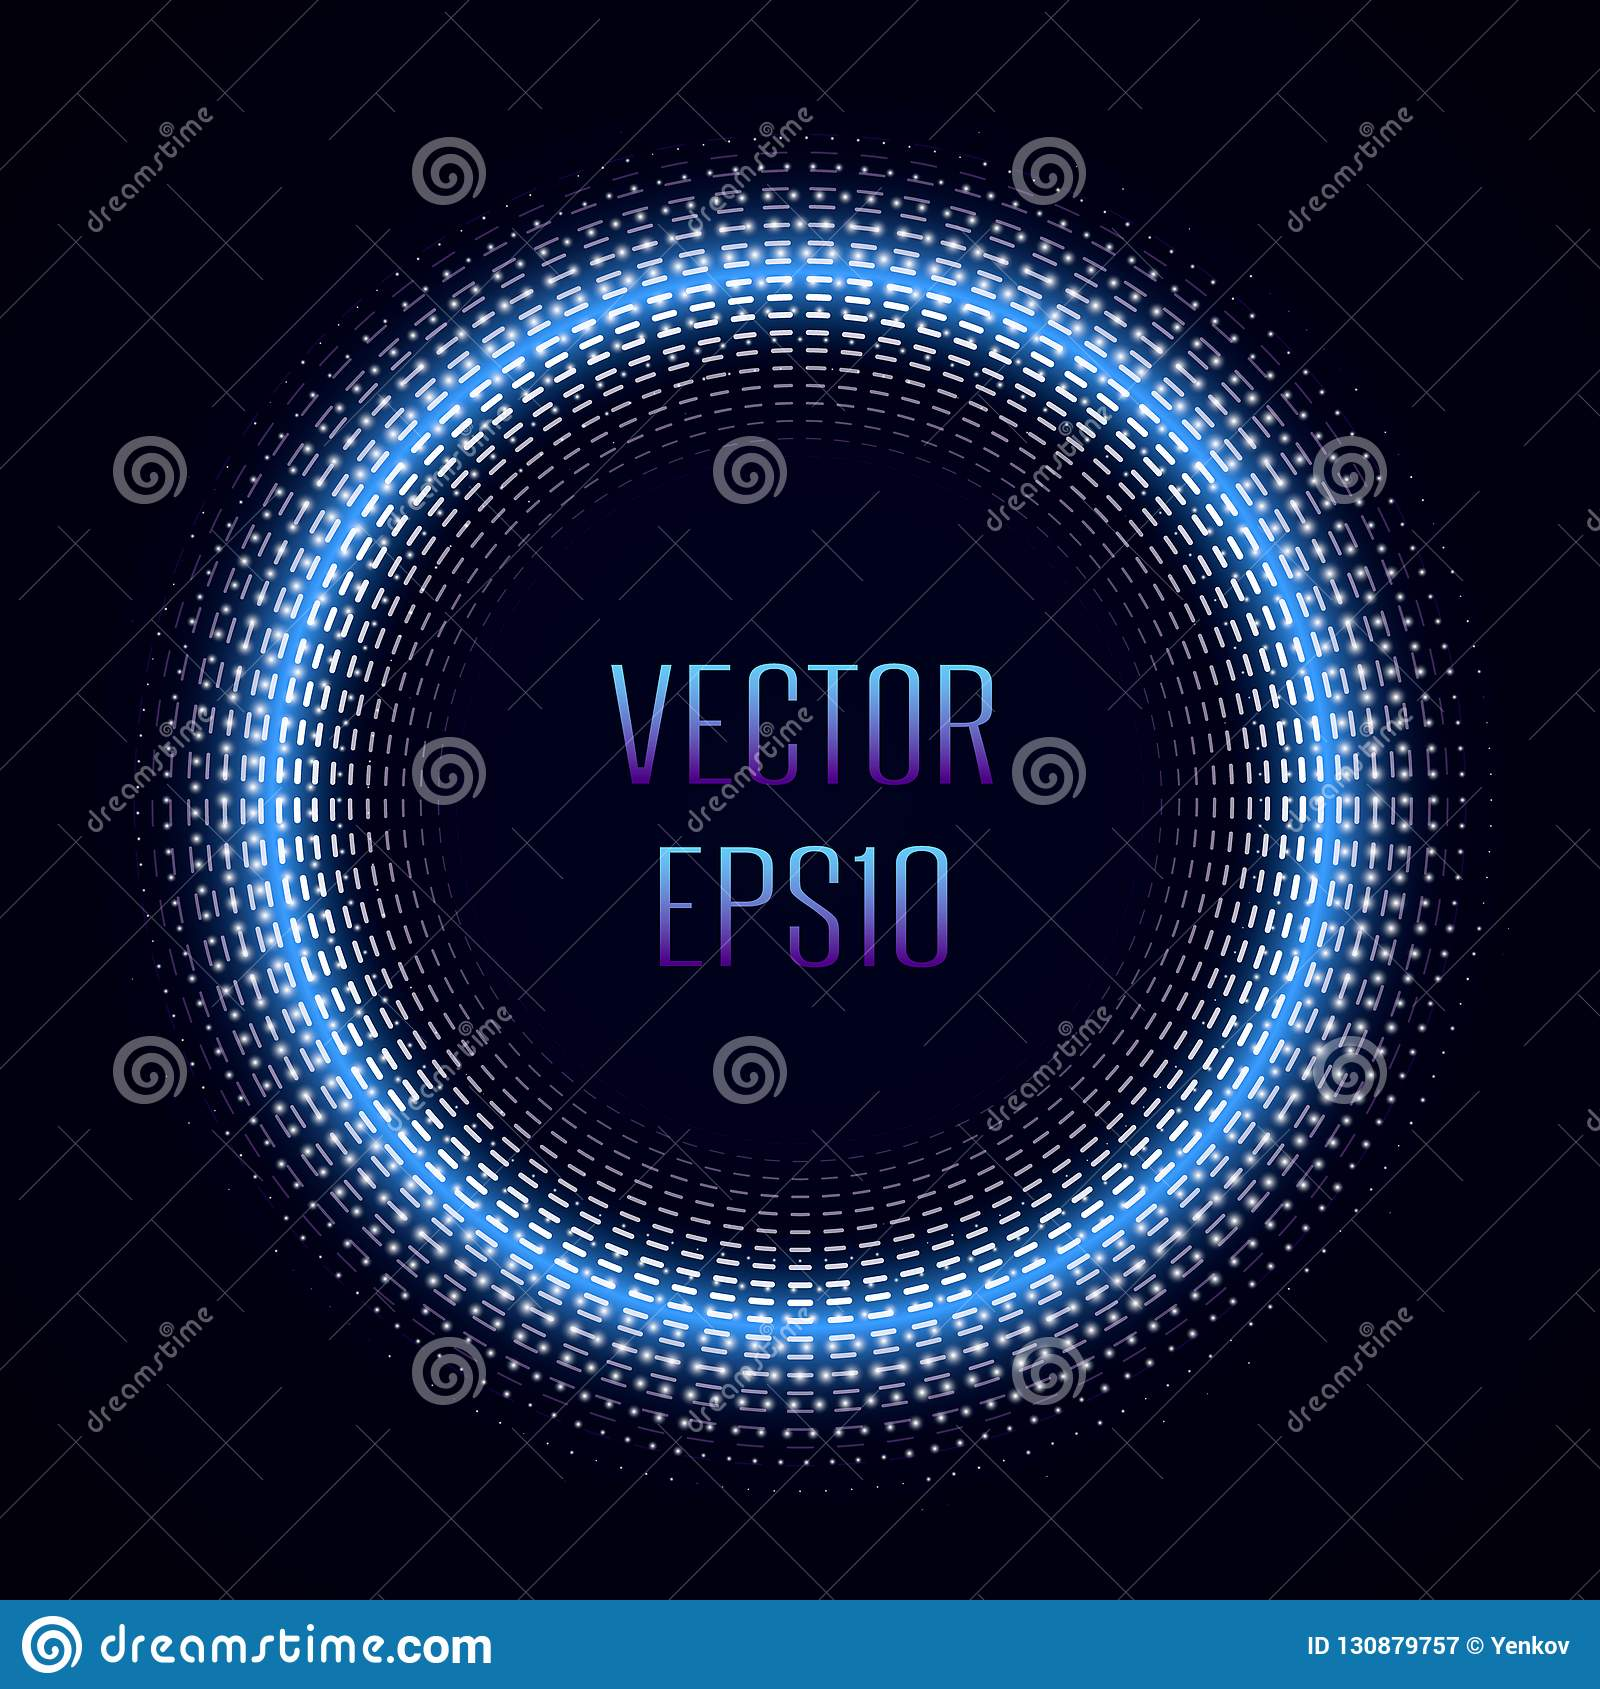 Abstract Halftone circle vector frame with Glowing abstract random dots. Abstract colored shape for your business idea